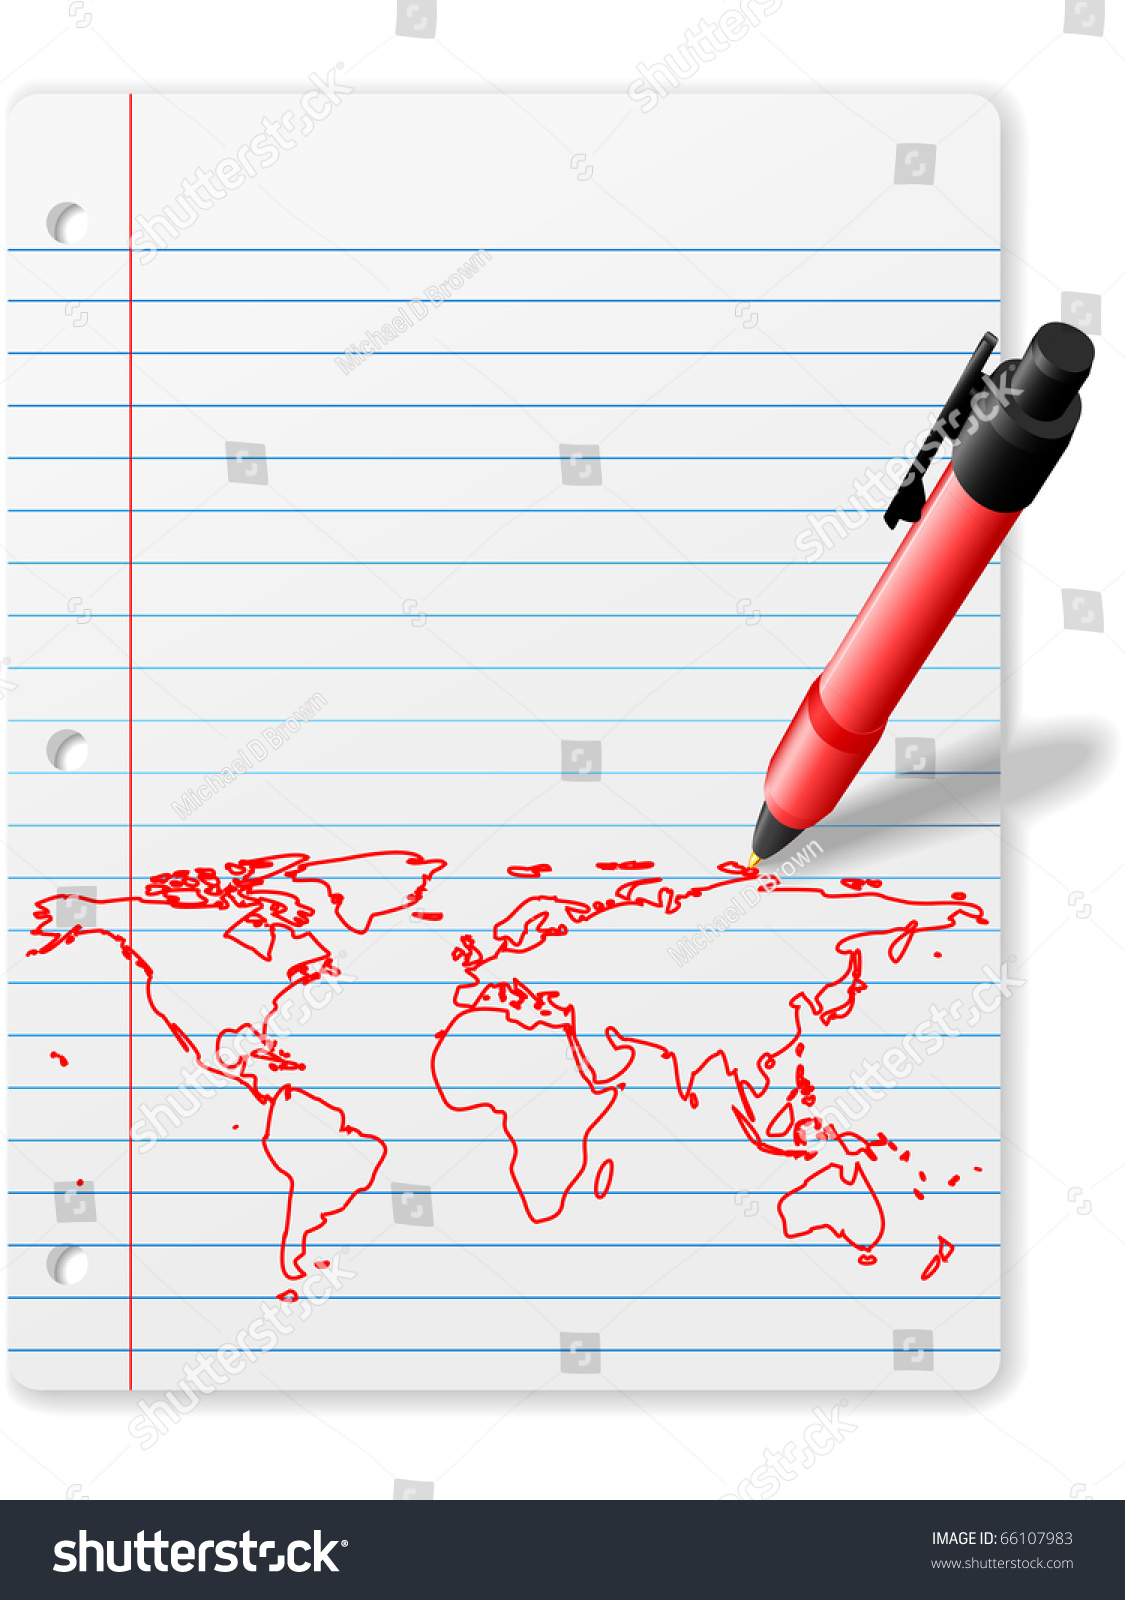 Pen drawing world map on notebook stock vector 66107983 shutterstock pen drawing a world map on notebook paper in red ink below copy space sciox Images